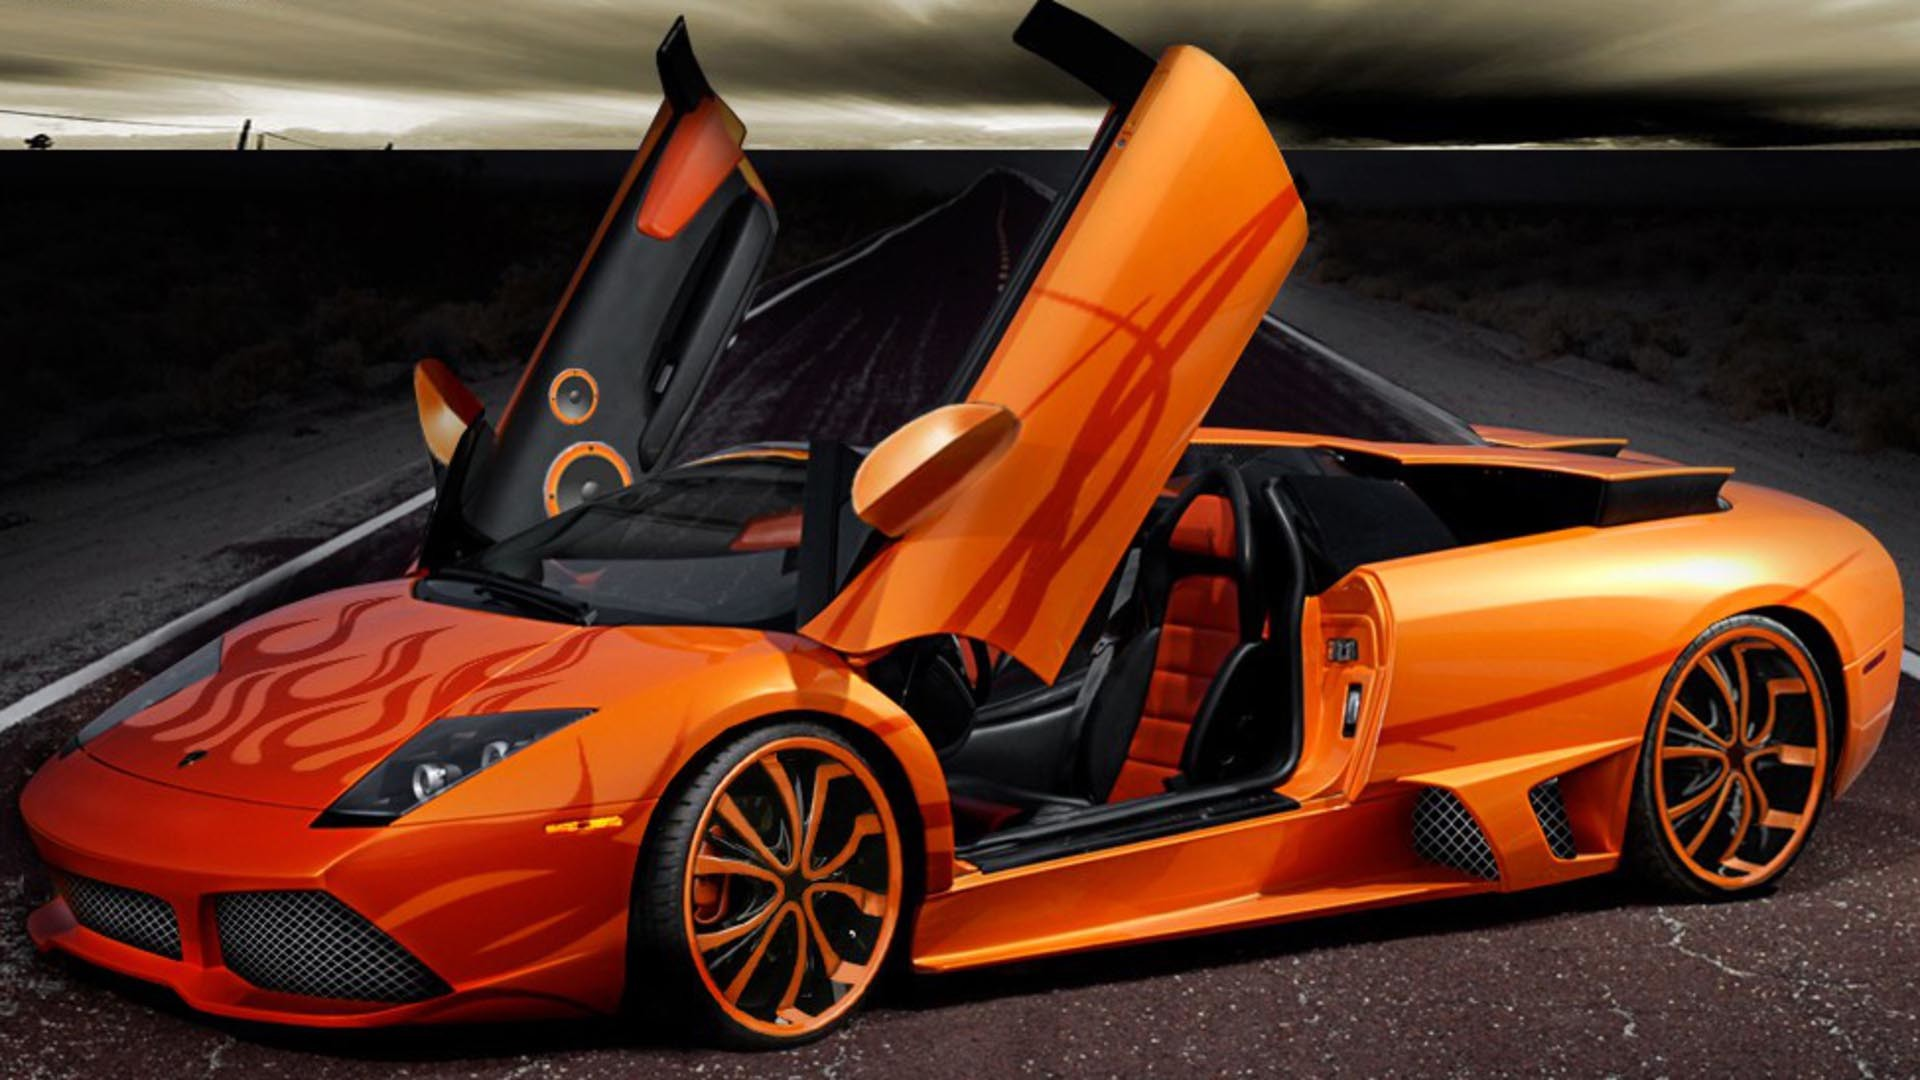 1920x1080 0 Lamborghini Wallpapers Lamborghini Wallpapers